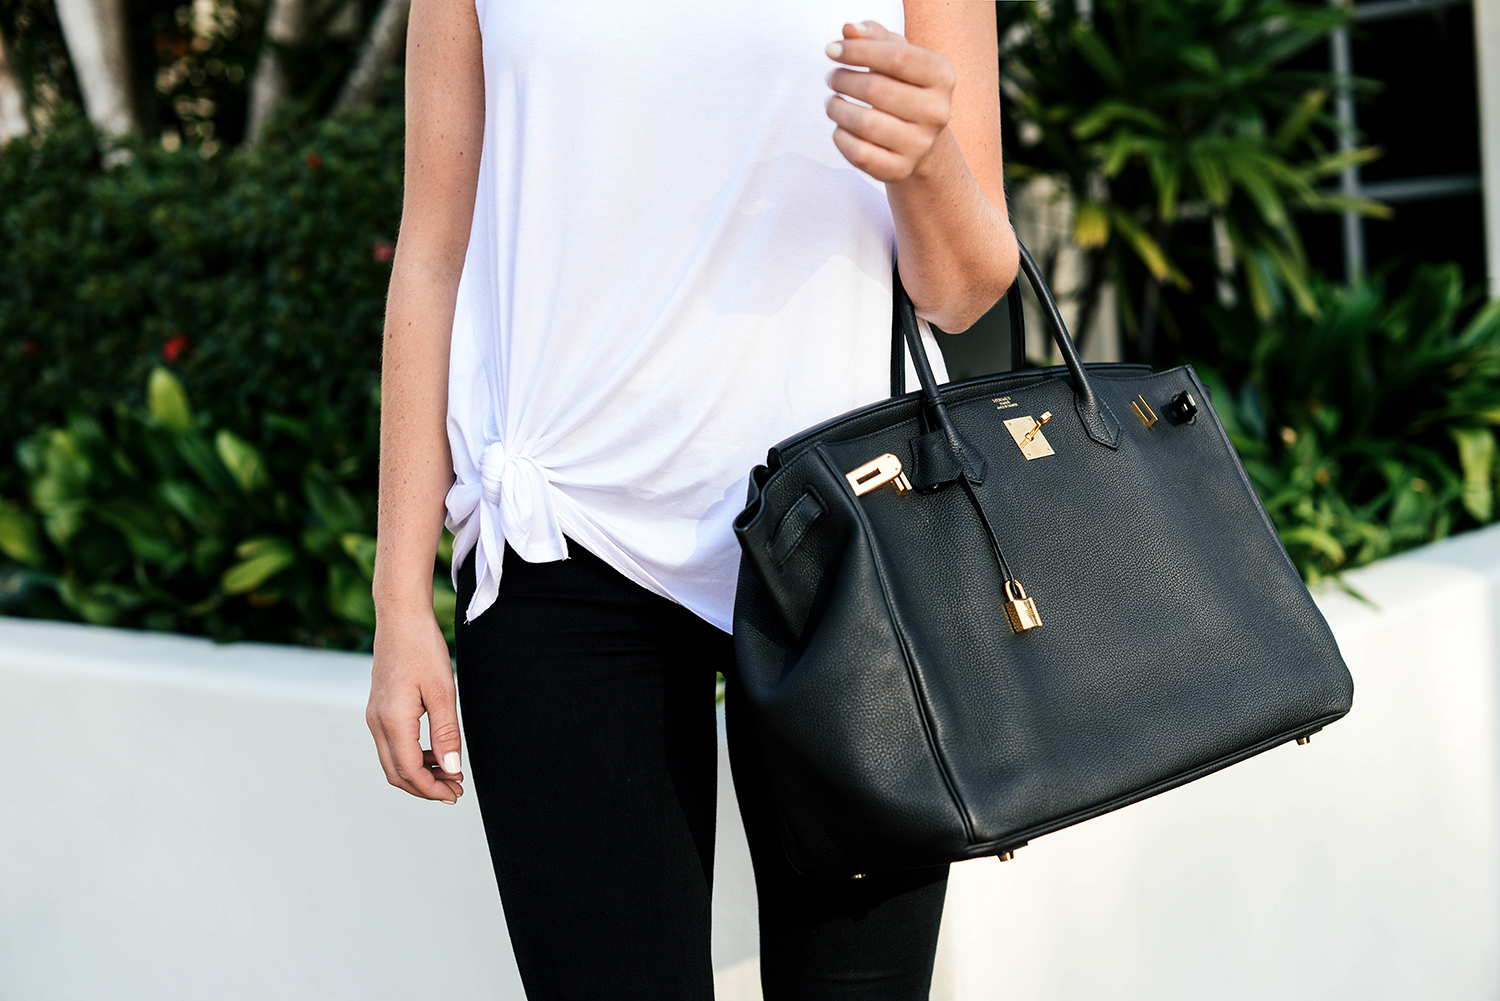 Hermès Birkin Bag | The Style Scribe, Dallas Fashion Blog